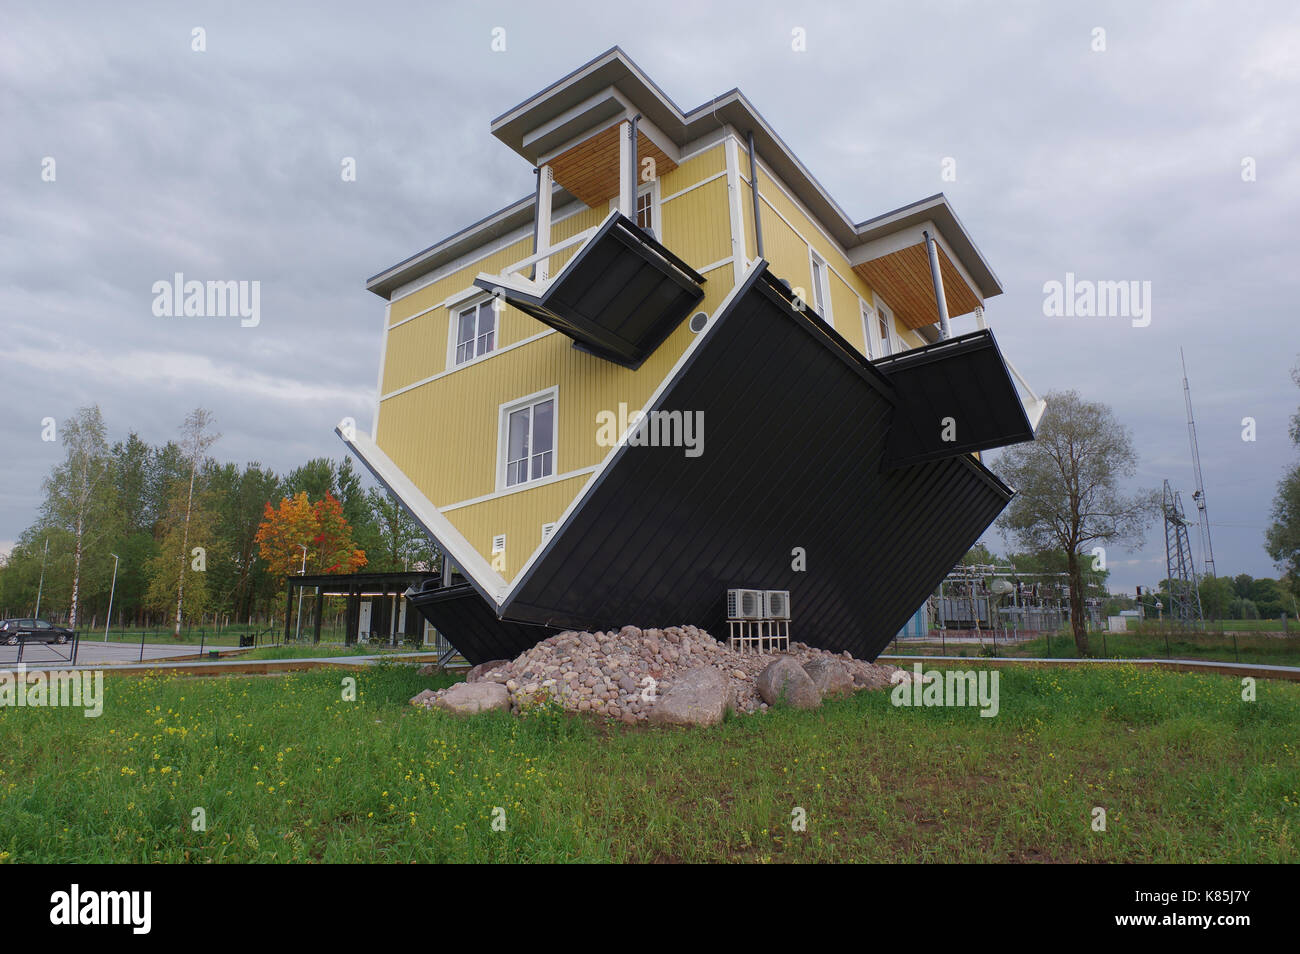 Upside down house in Tartu. Estonia 17th September 2017 - Stock Image